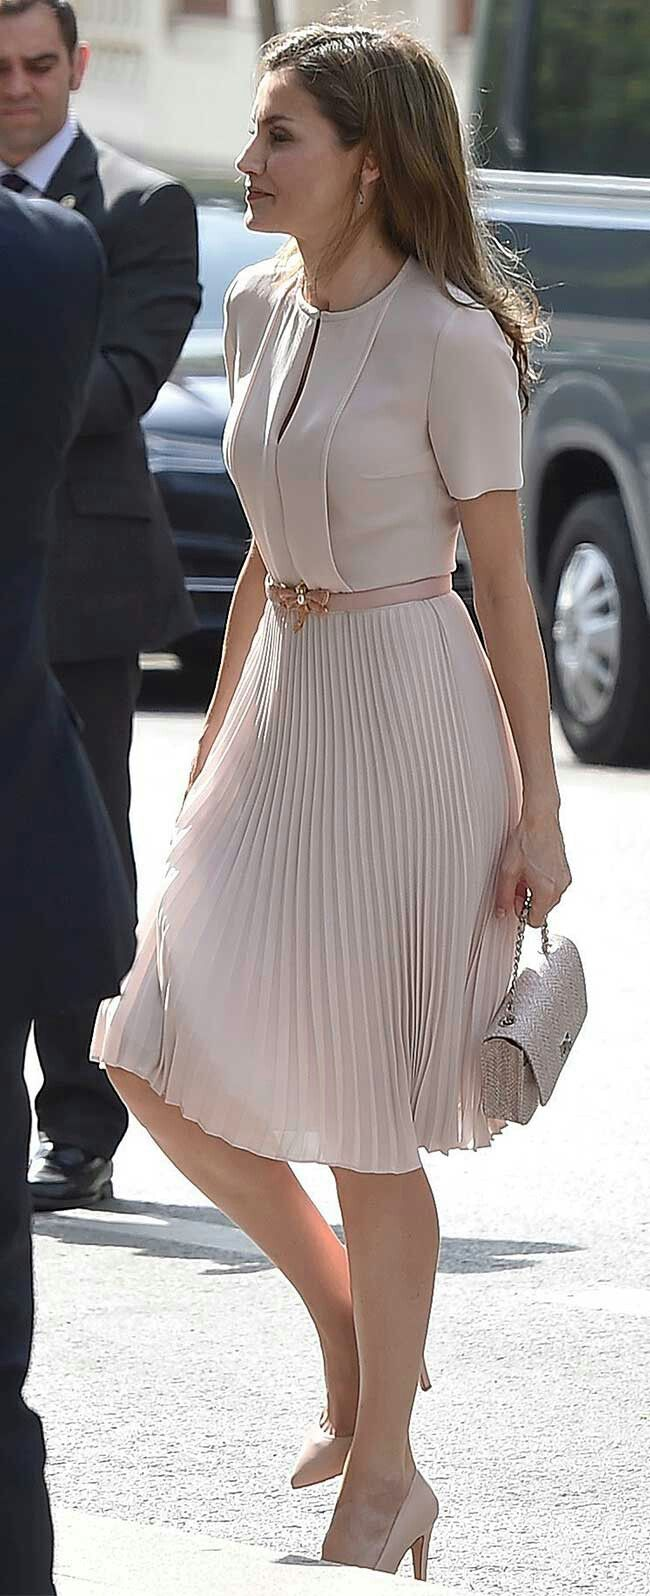 Queen Letizia - ligth #pink Boss 'Diblissea' pleated dress - Uterqüe pink leather belt with a dragonfly buckle - Lodi 'Saray' nude patent leather pumps - Magrit 'Gabriela' bag - Coolook 'Sarin' earrings